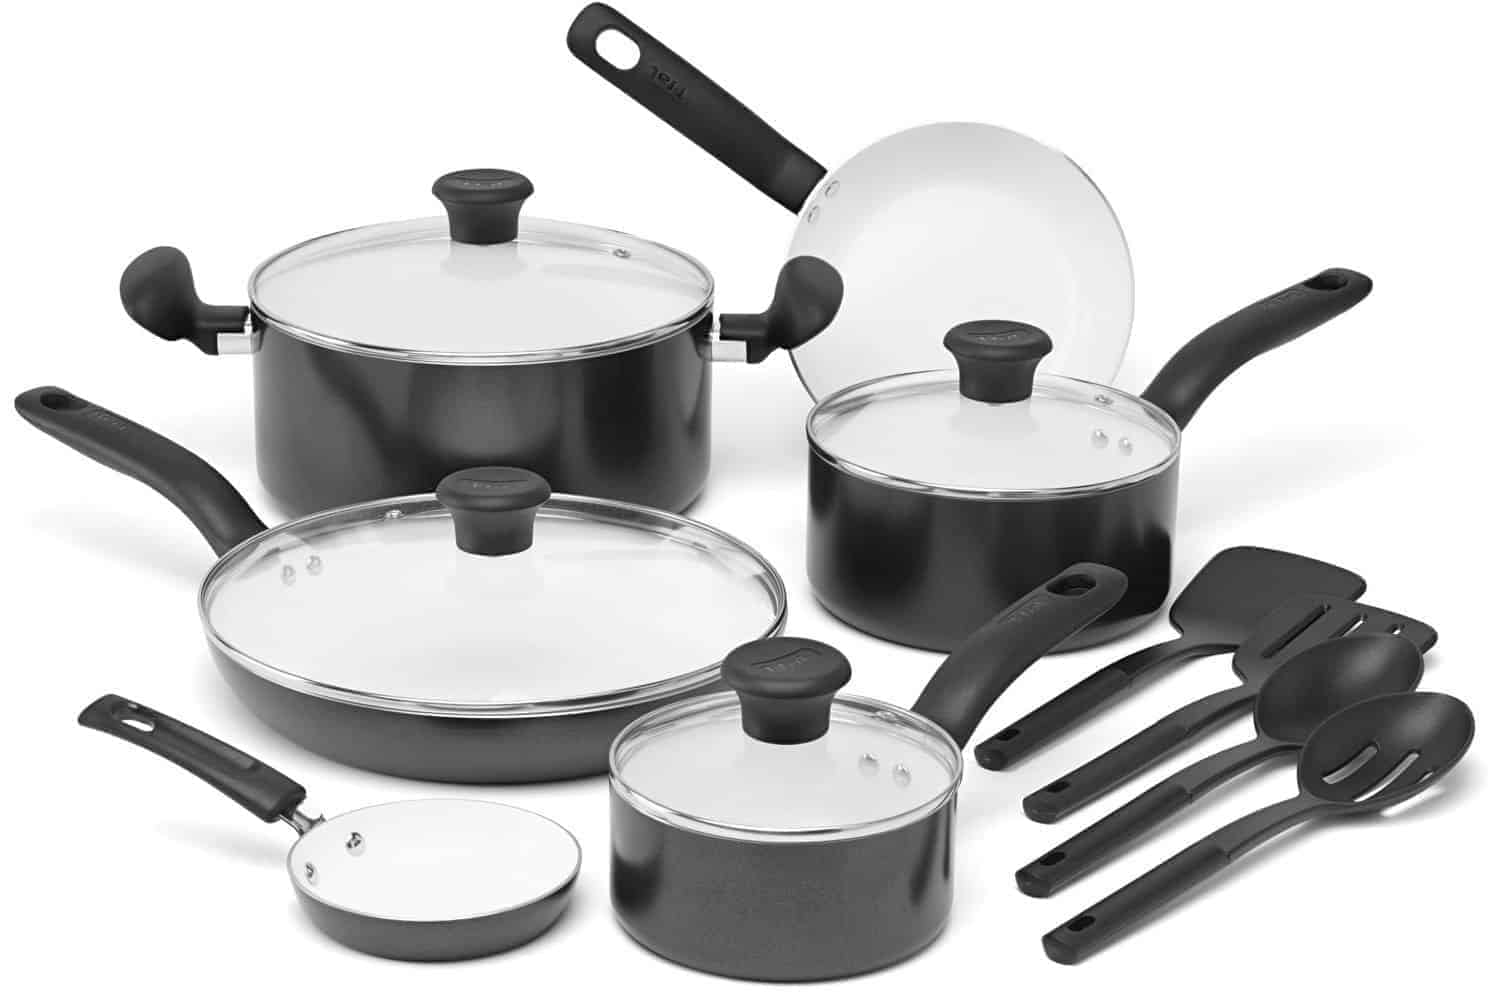 T-fal C996SE Initiatives Non-stick Ceramic Coating 14-Piece Cookware Set